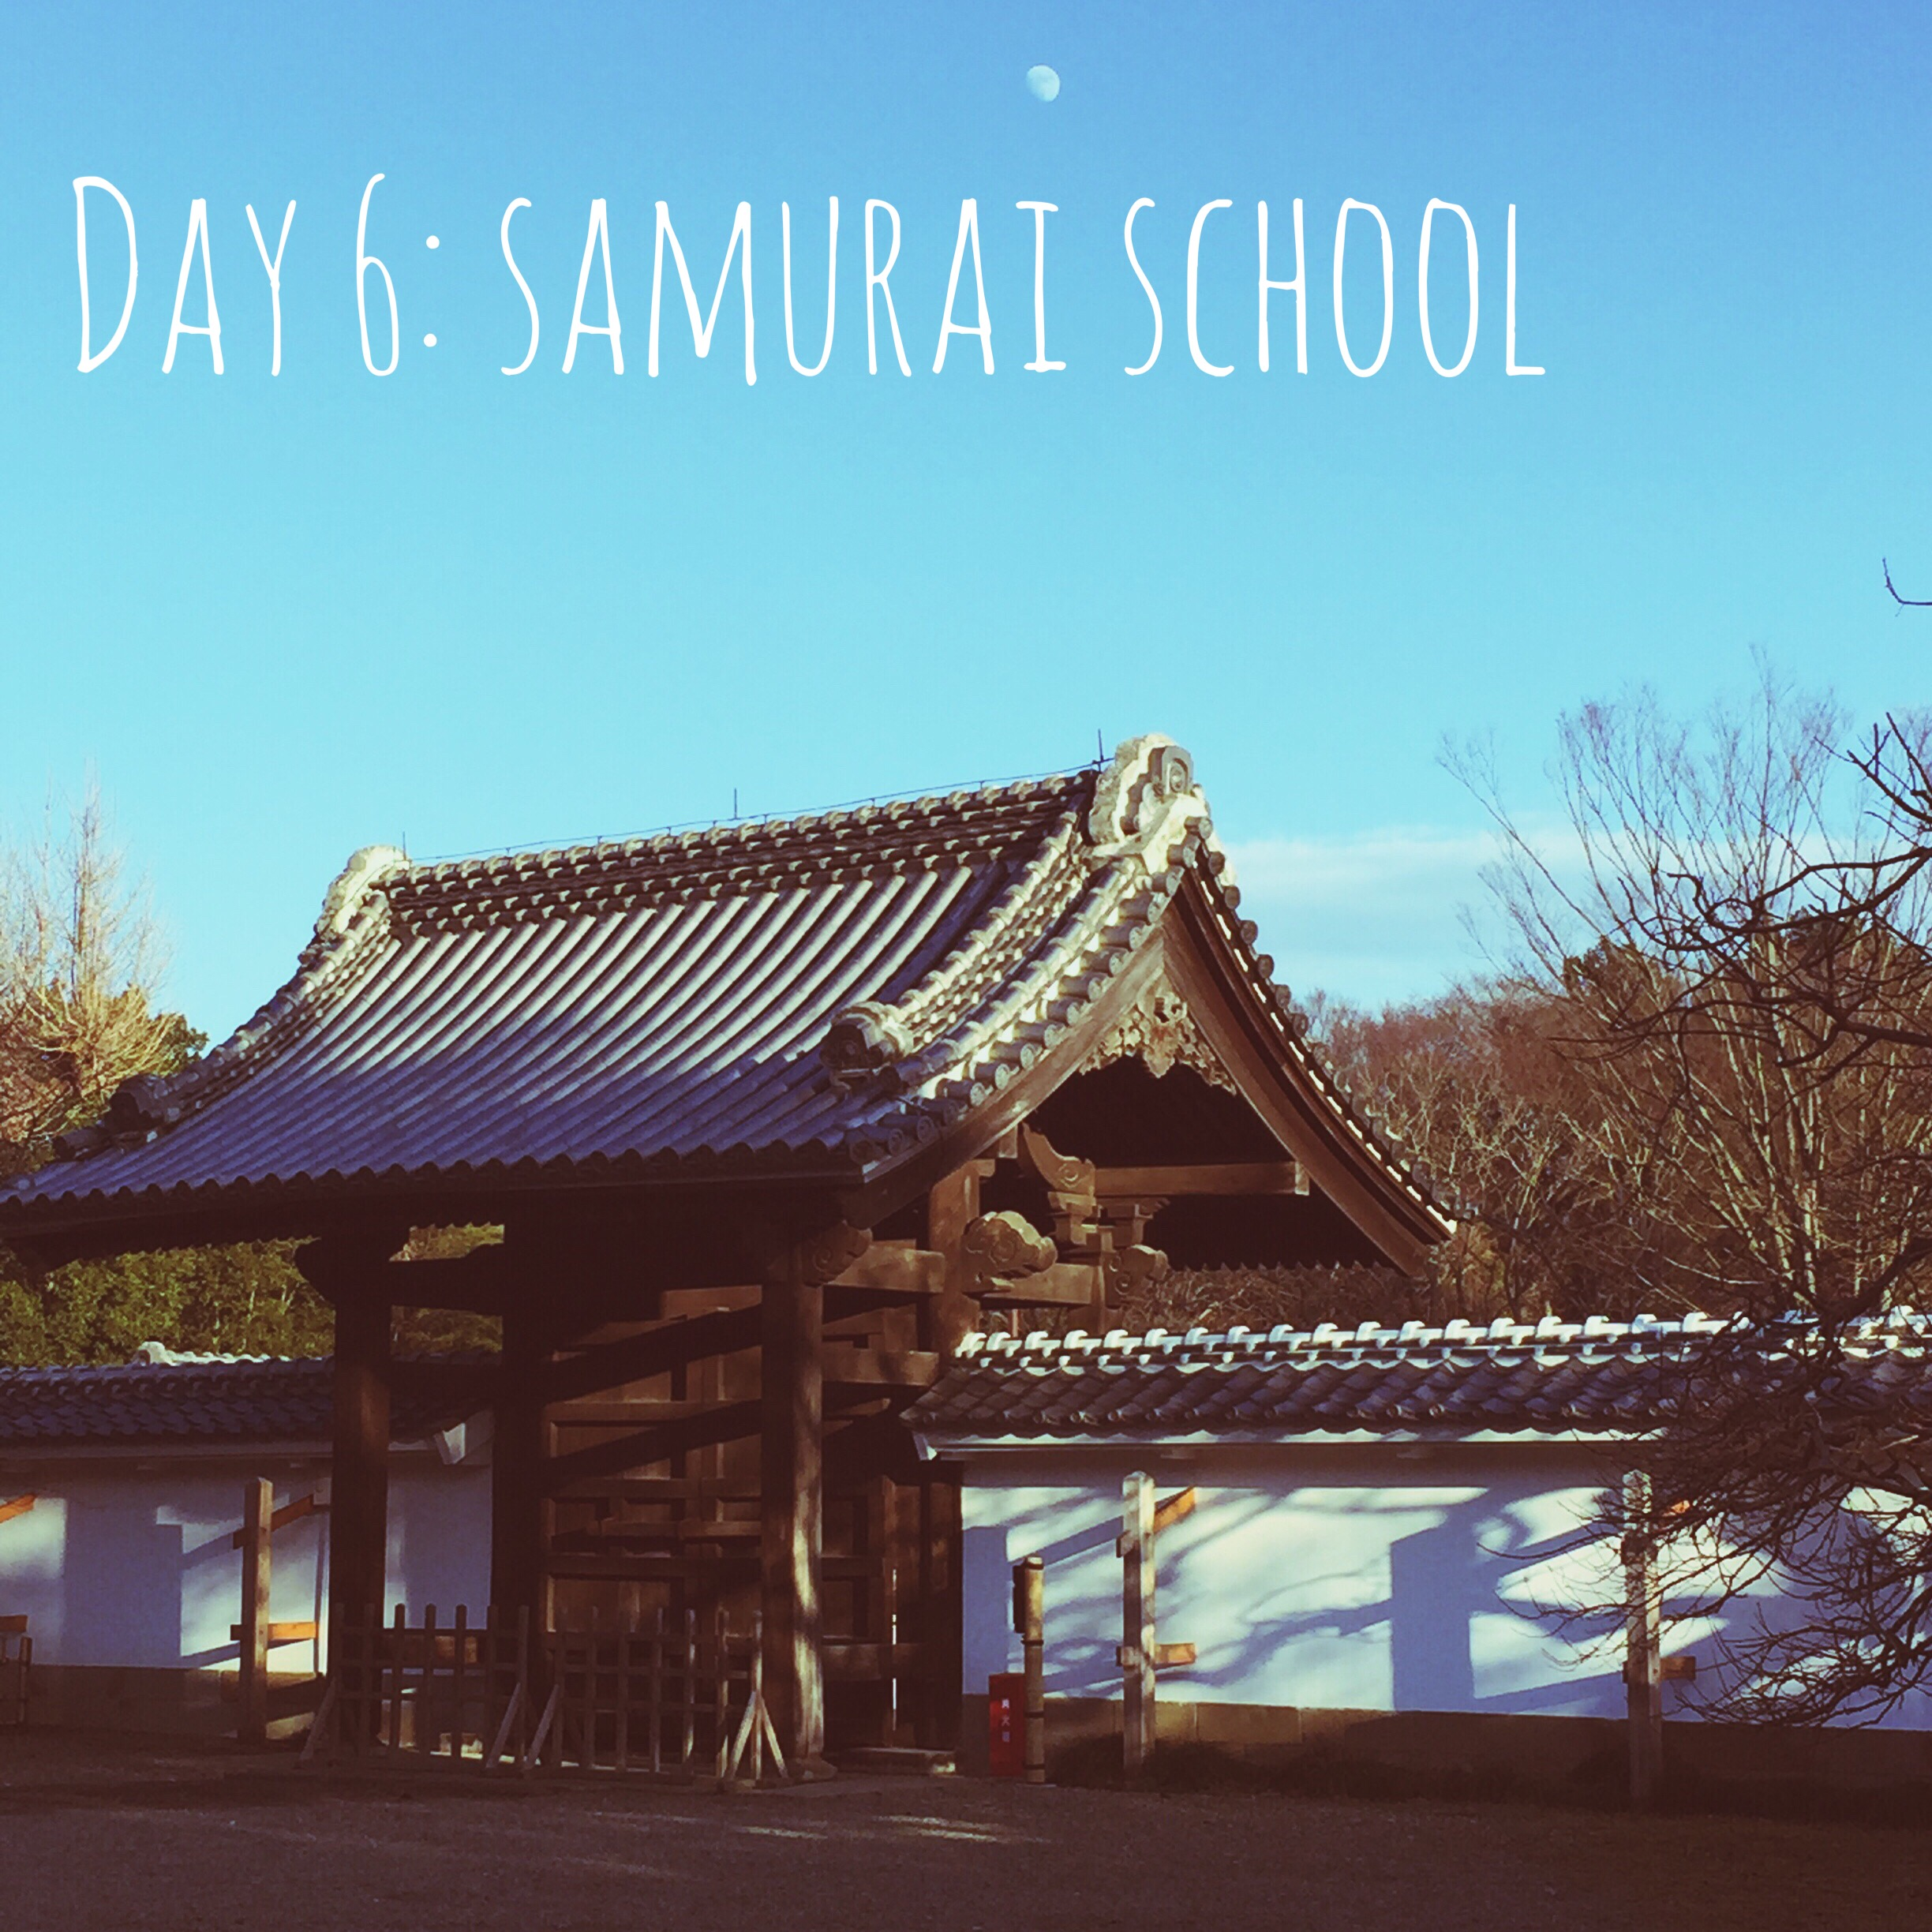 Exploring an old samurai school.